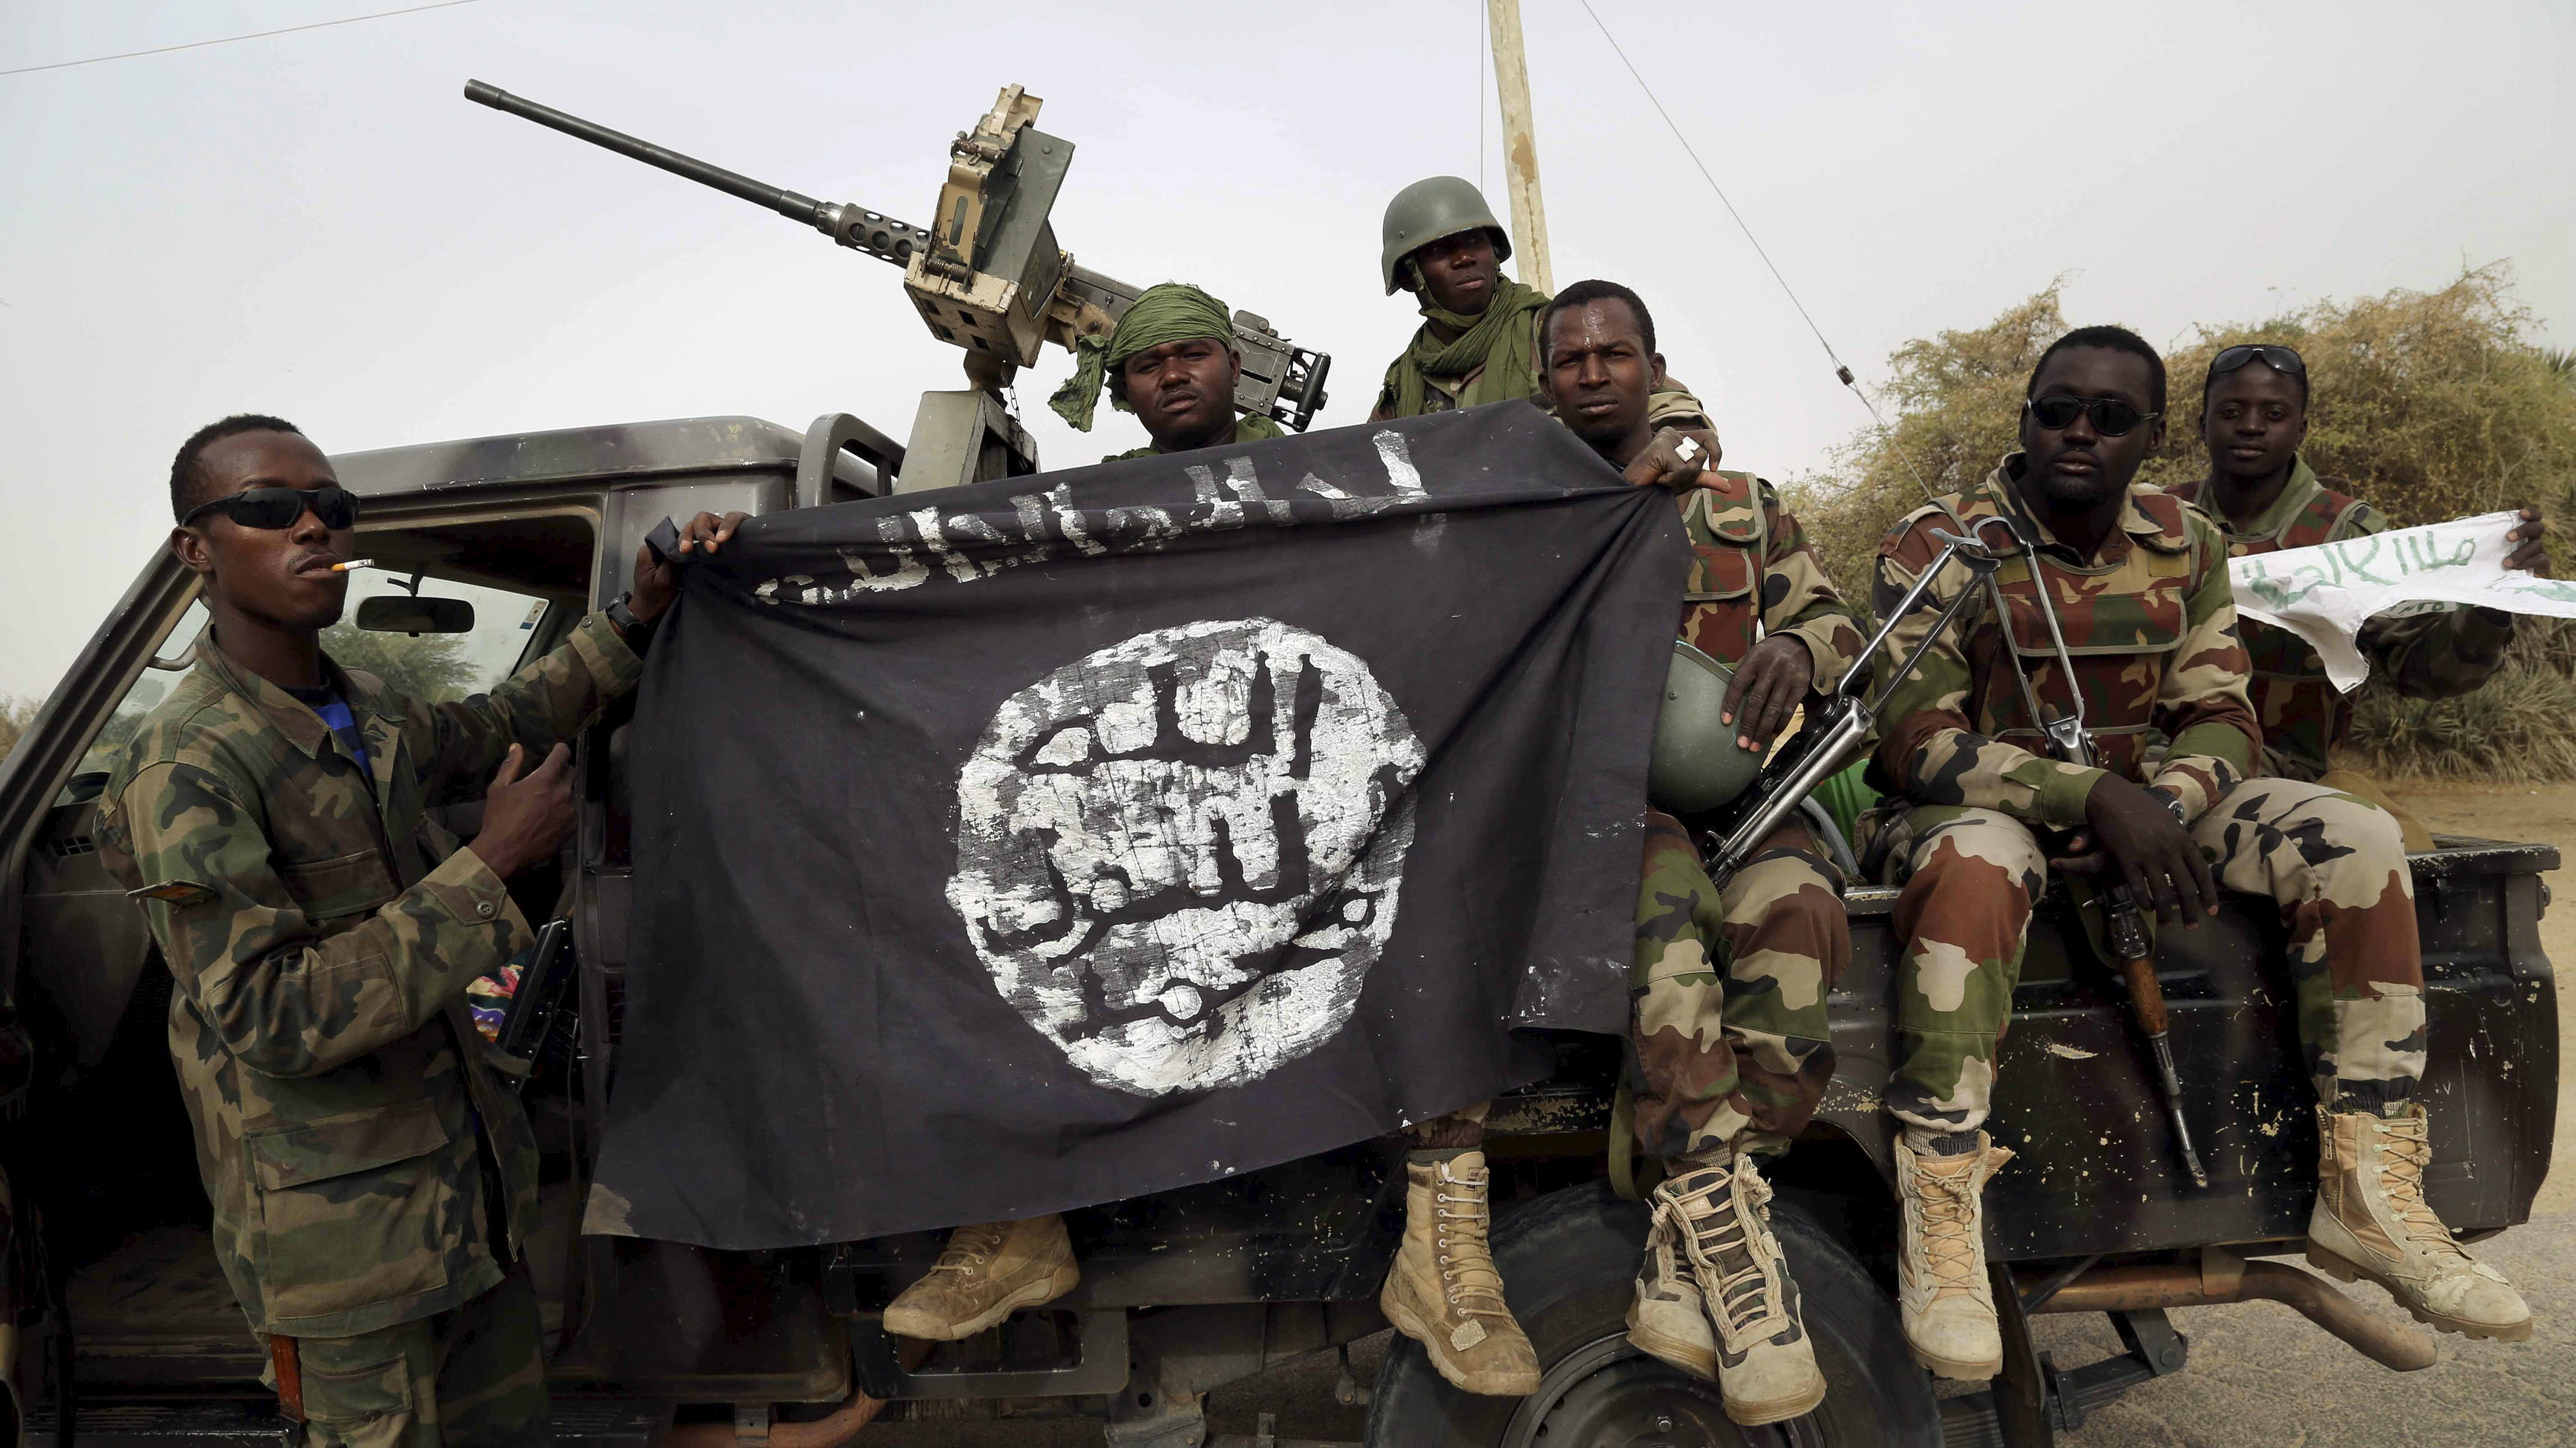 Nigerian soldiers hold up a Boko Haram flag that they had seized in the recently retaken town of Damasak, Nigeria, March 18, 2015. Chadian and Nigerien soldiers took the town from Boko Haram militants earlier this week. The Nigerian army said on Tuesday it had repelled Boko Haram from all but three local government districts in the northeast, claiming victory for its offensive against the Islamist insurgents less than two weeks before a presidential election. Picture taken March 18. REUTERS/Emmanuel Braun